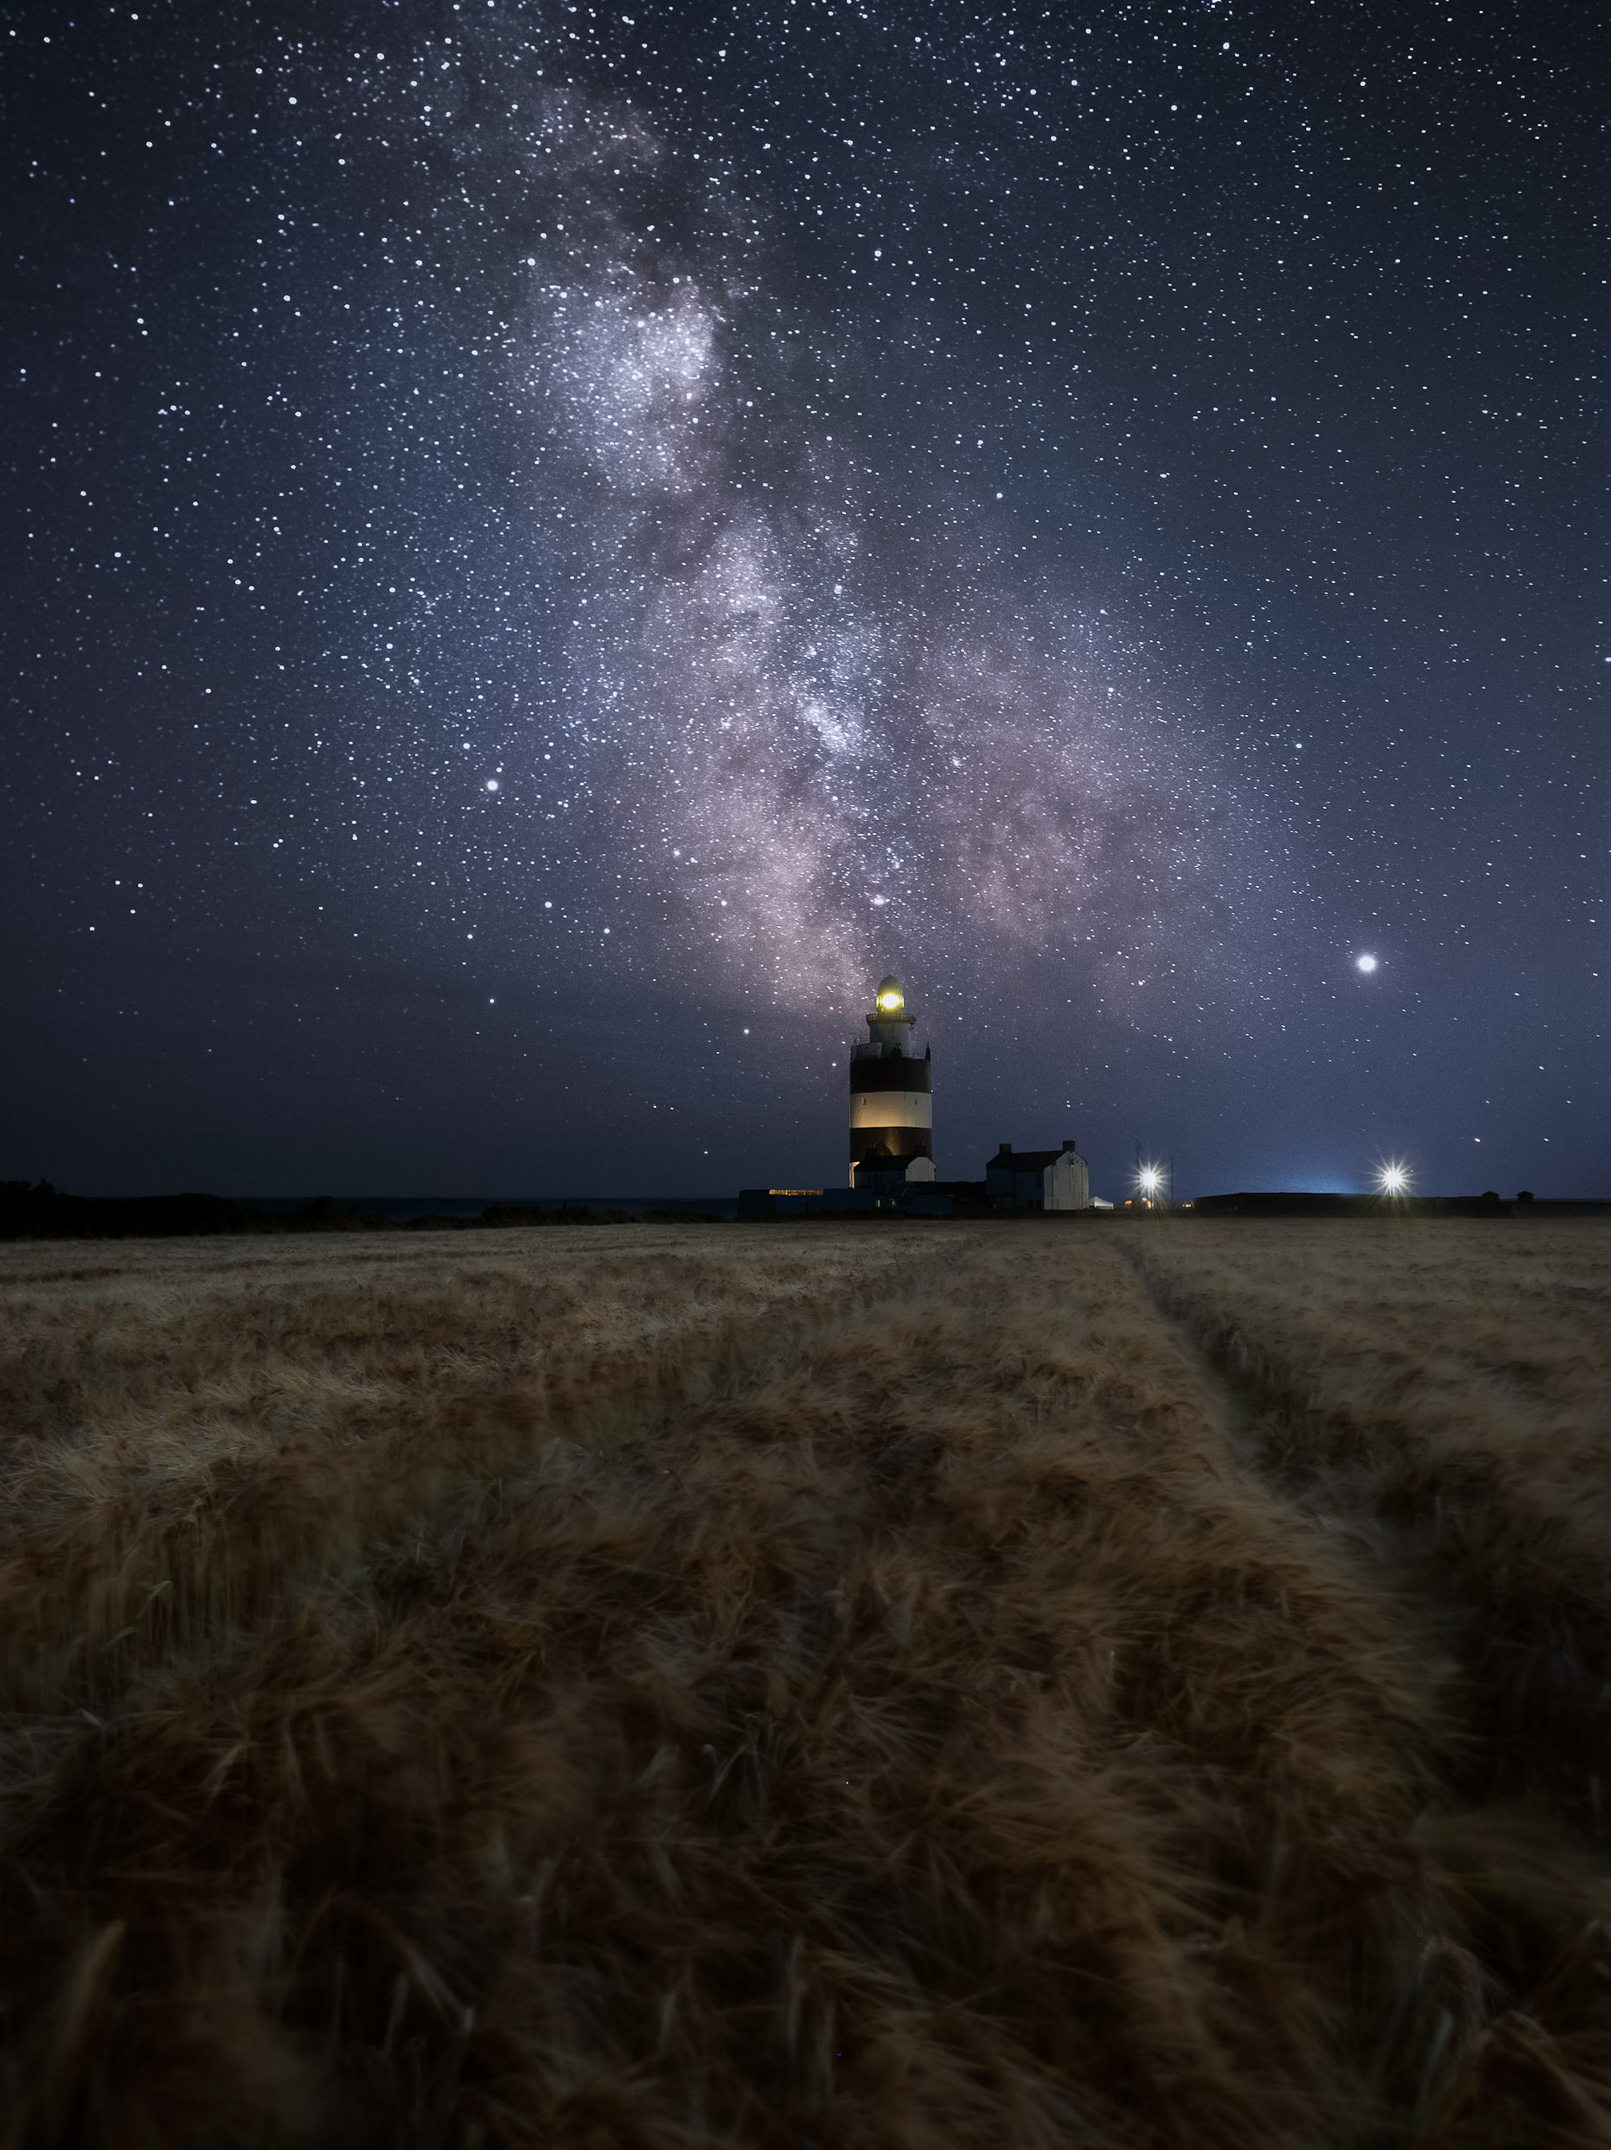 Milky Way rising over Hook Head lighthouse in Co Wexford. This is the oldest operational lighthouse in the whole world. I love golden wheat fields and even though I knew they would be all blurred in this shot I did not care, the tractor drill gives this shot the perfect leading line to the lighthouse and the Milky Way. This was one of the trickier blends due to the buildings. When shooting my foreground I dialled down the aperture for one exposure to get the starburst from the lights.